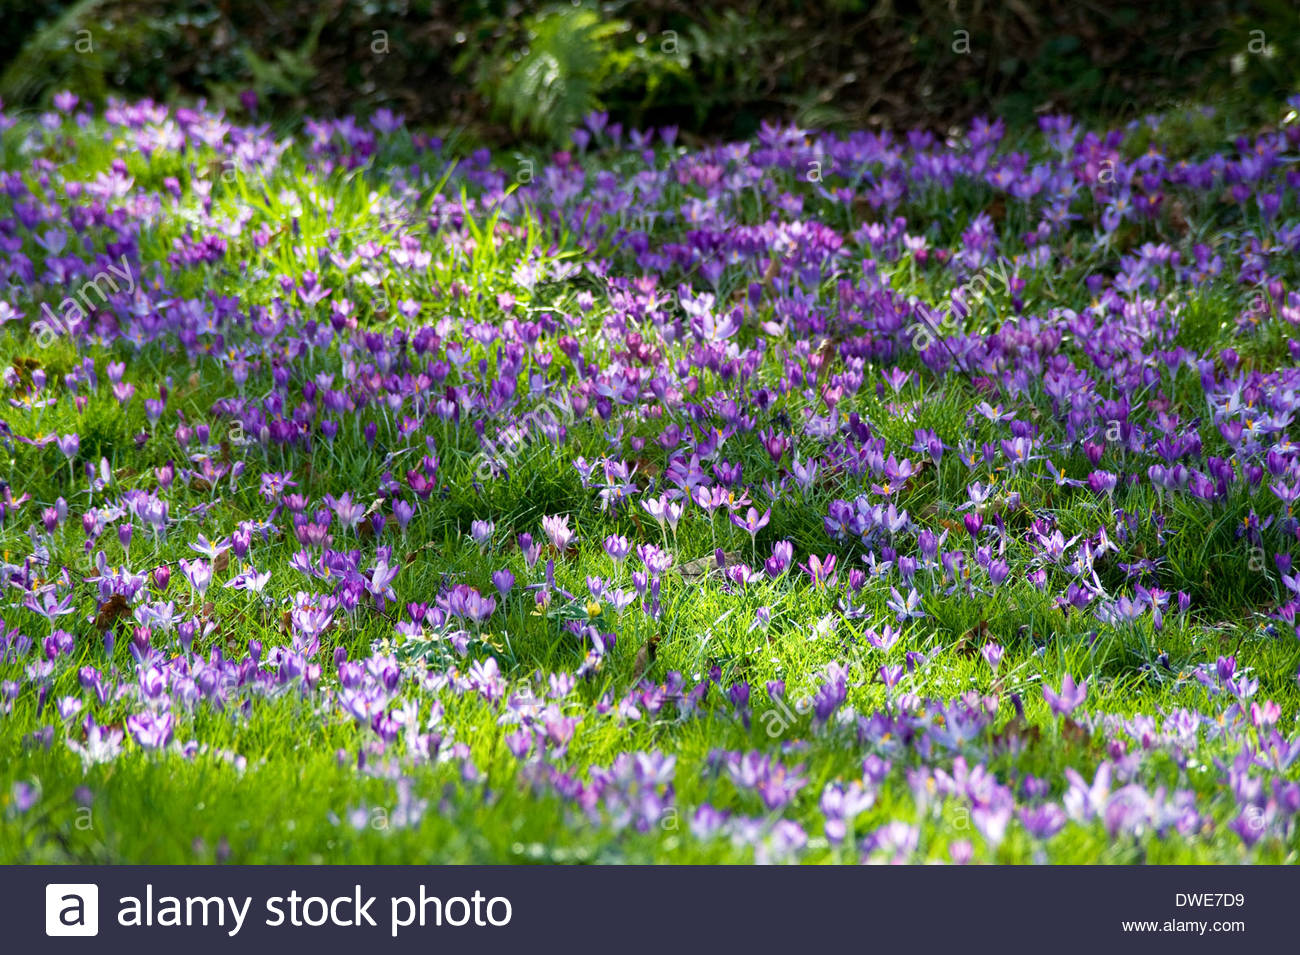 A sunny garden lawn in spring with a carpet of purple crocuses. - Stock Image